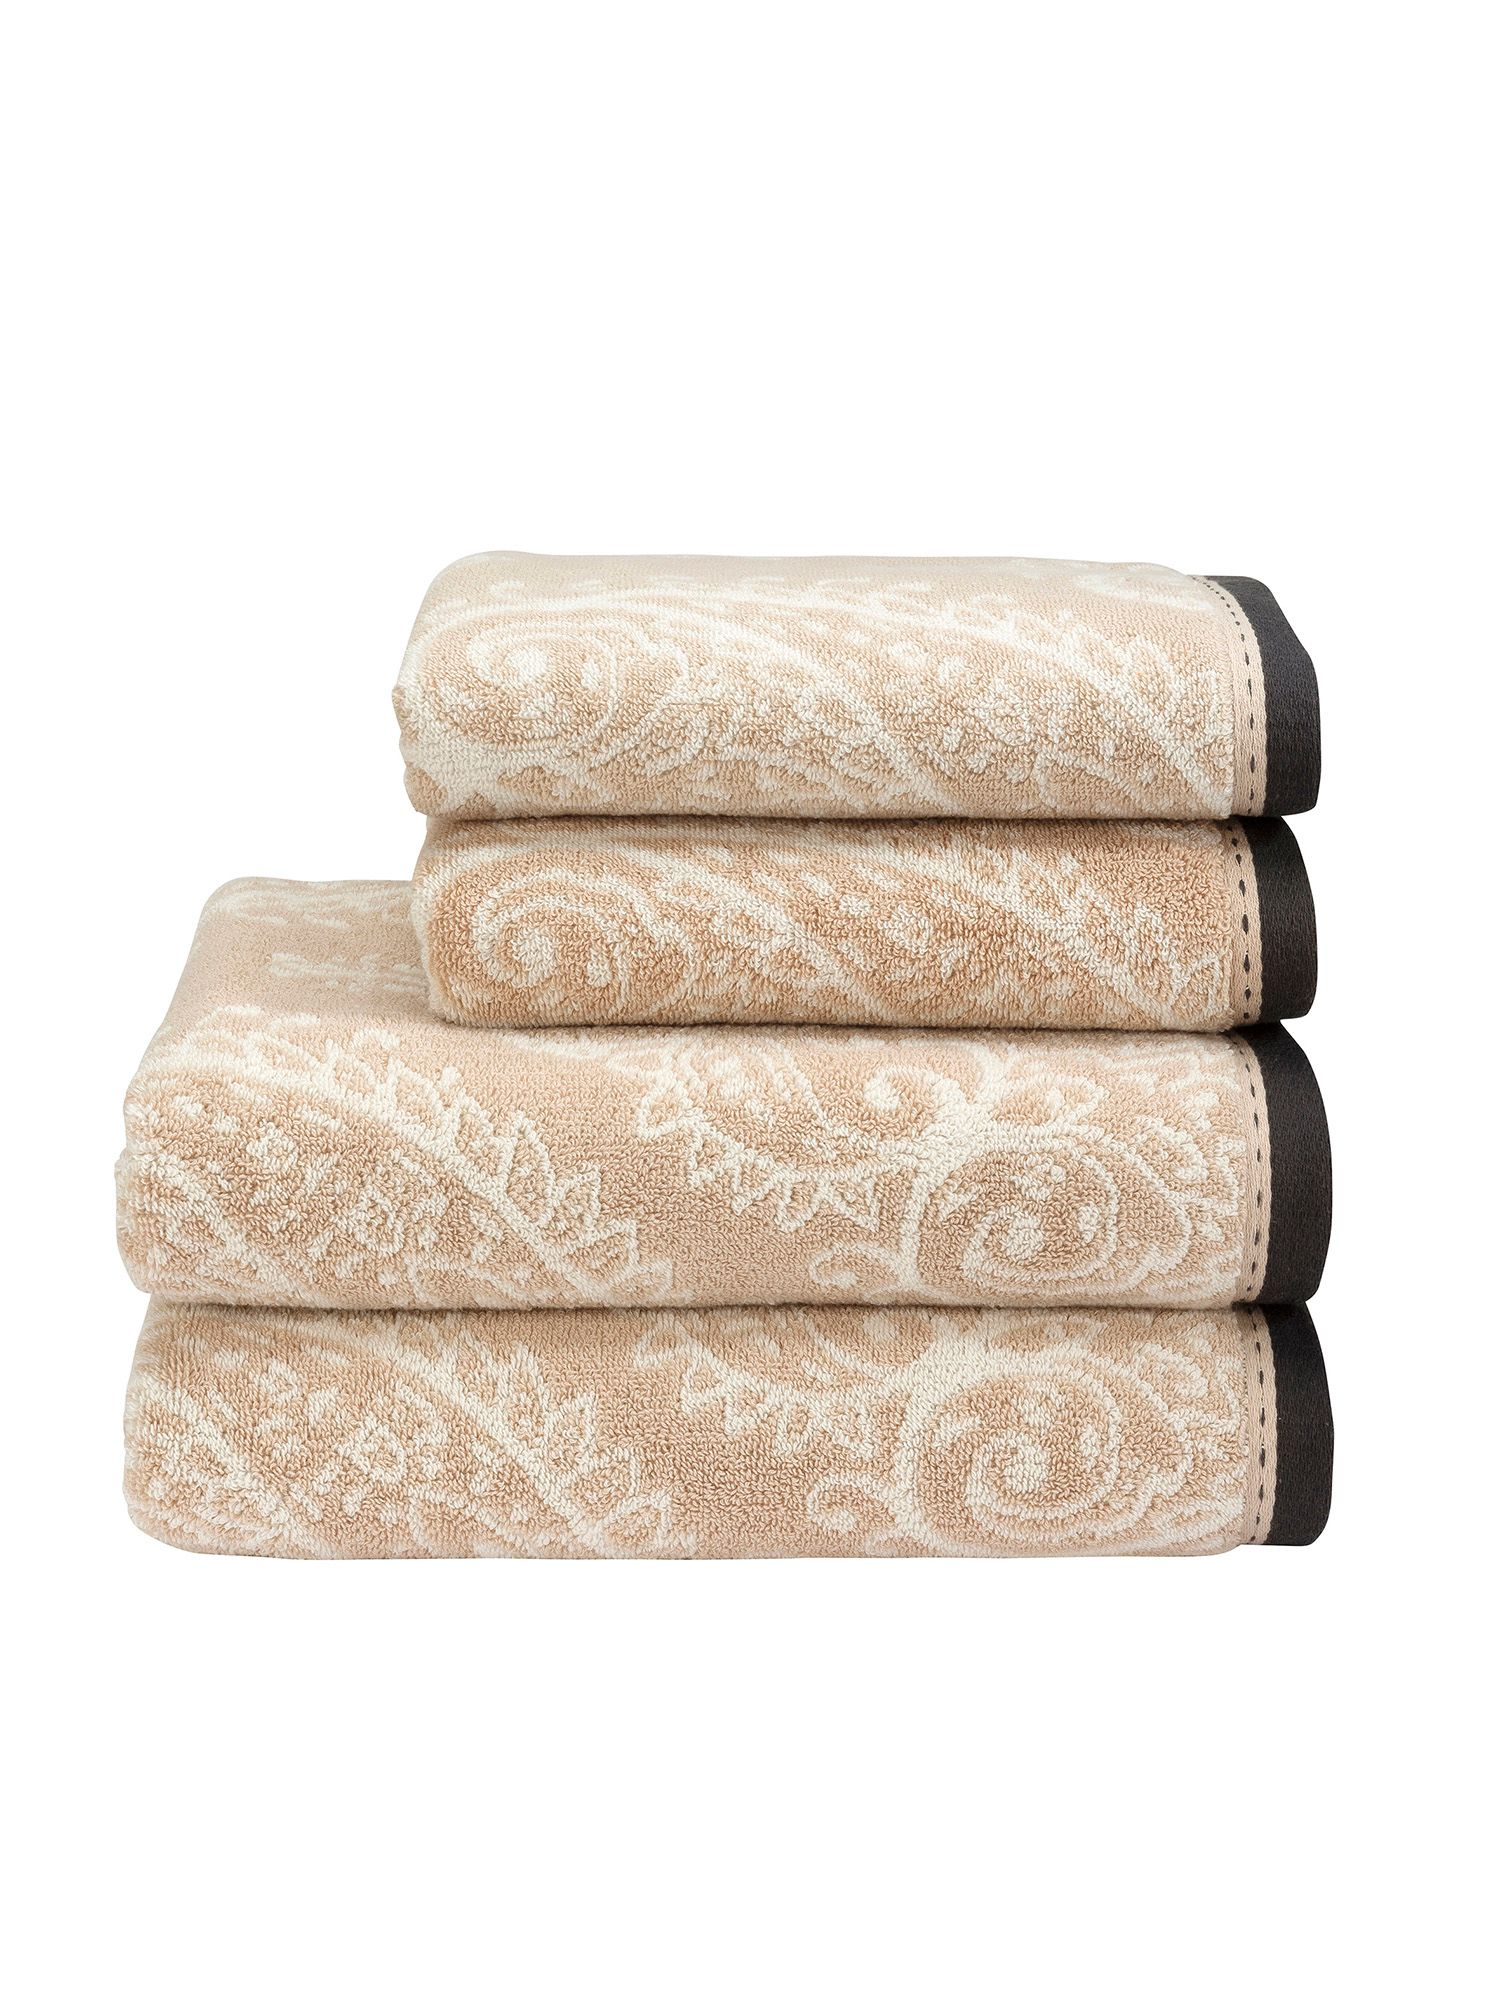 Mandalay towels linen